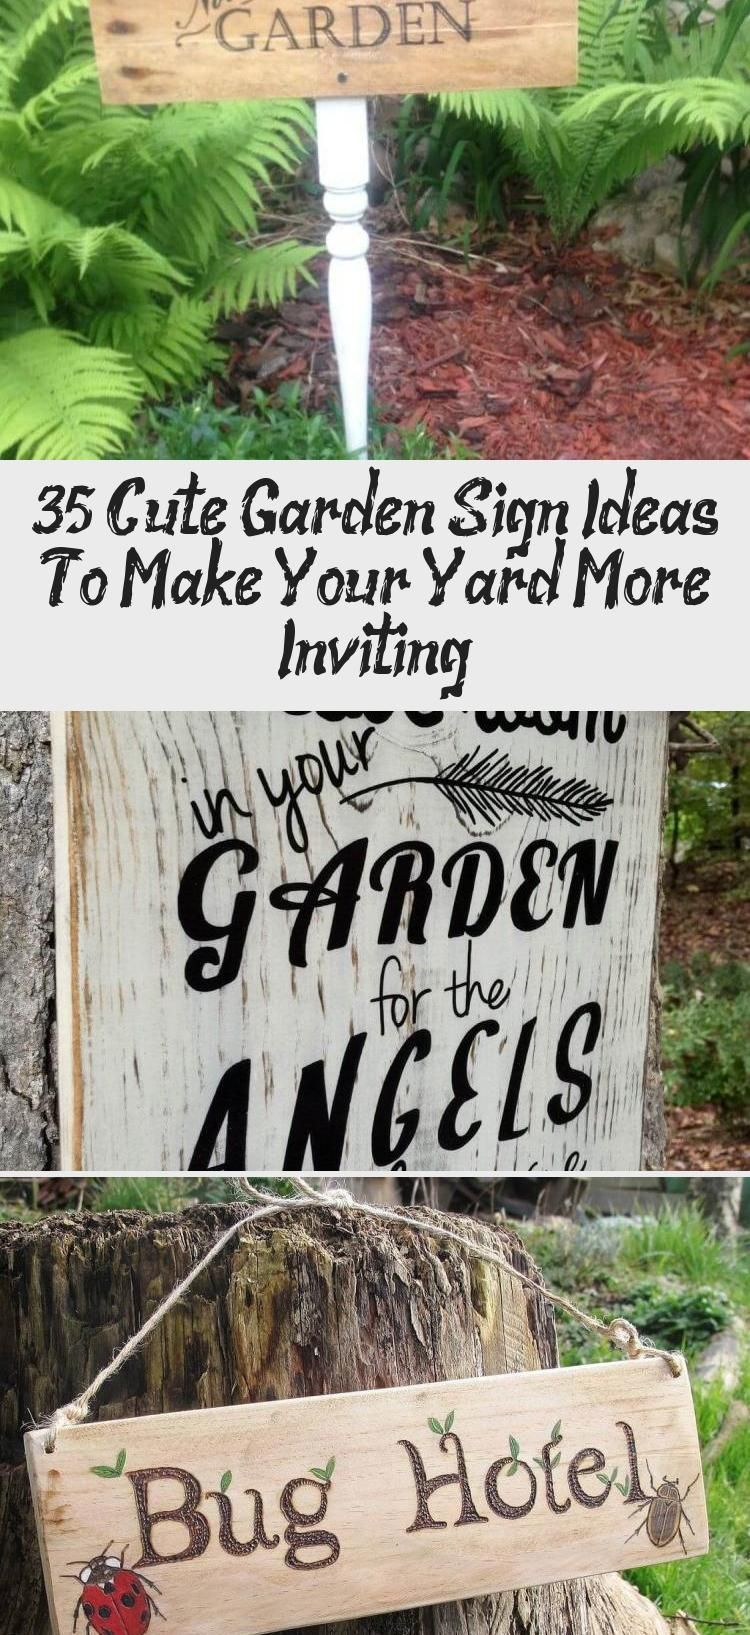 35 cute garden sign ideas to make your yard more inviting